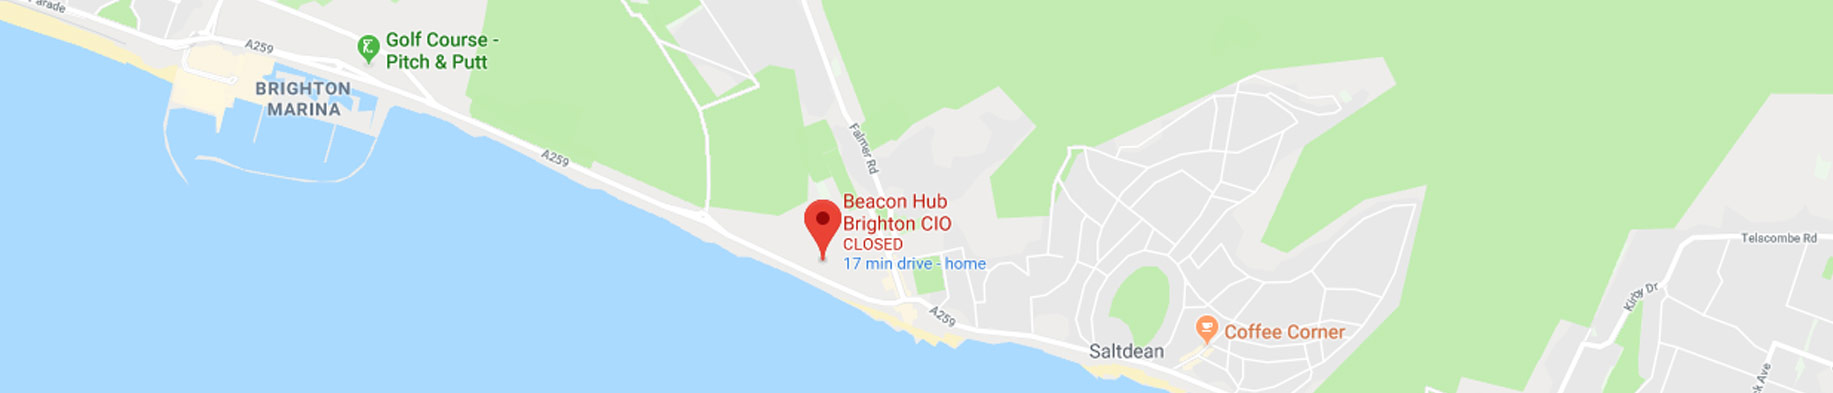 beacon hub rottingdean brighton sx